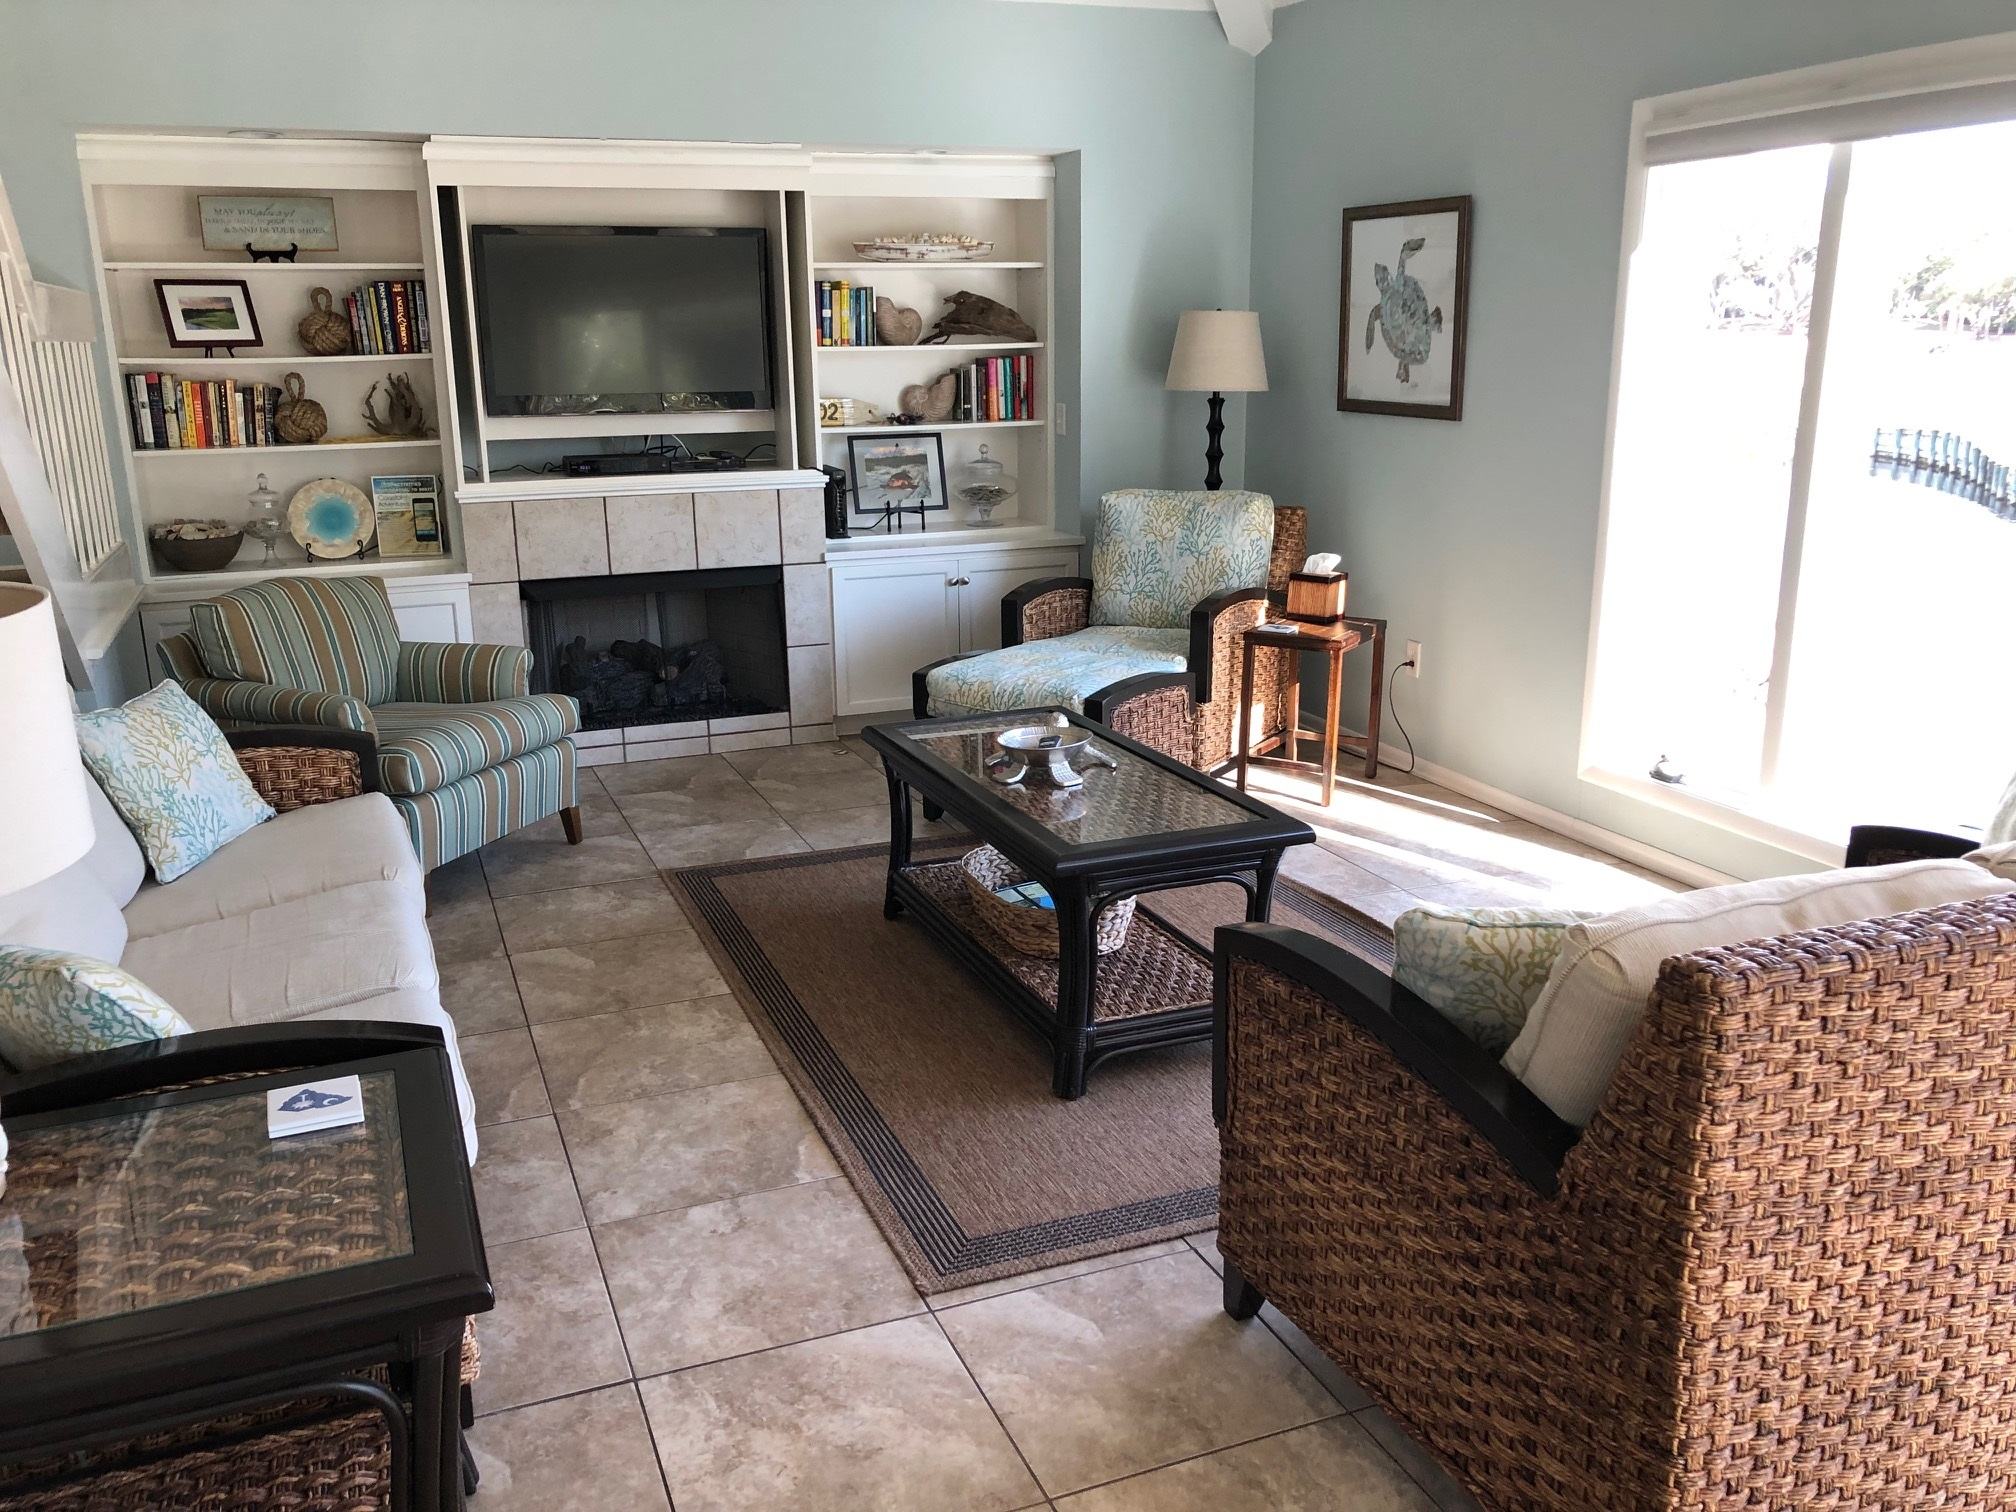 The town home features tile flooring and  bookshelves with an HDTV.